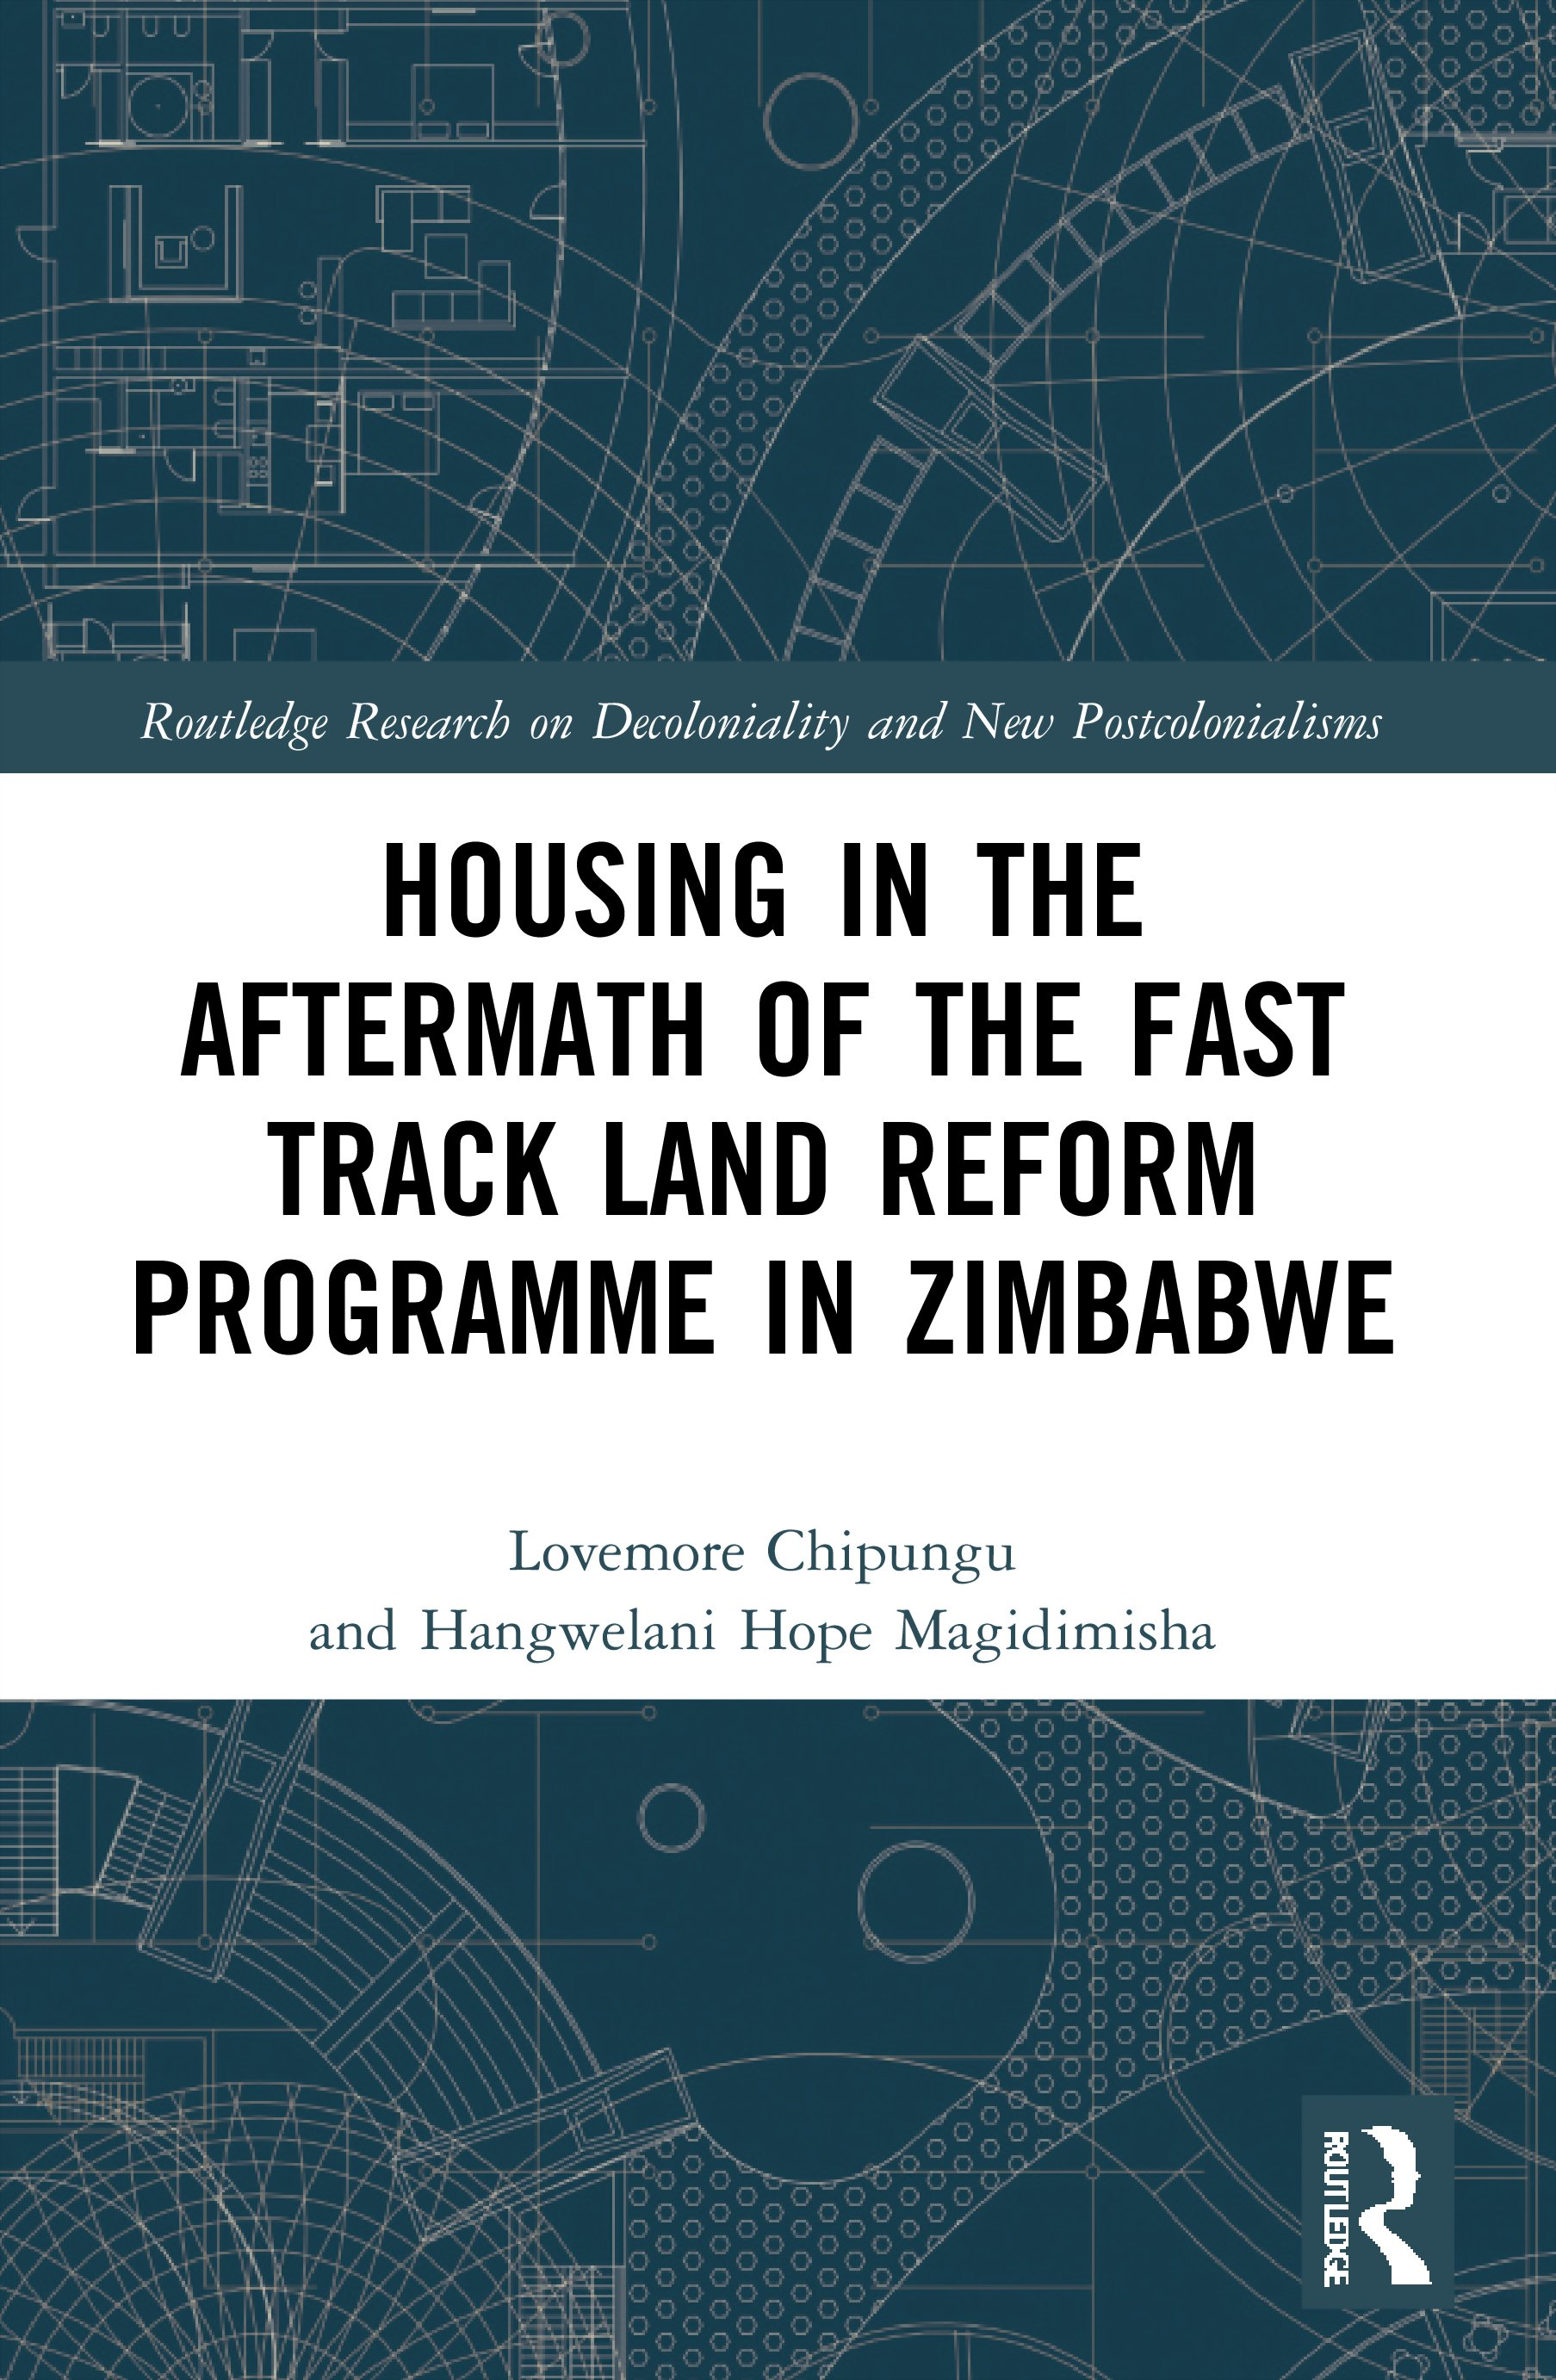 Insight into the FTLRP in Zimbabwe